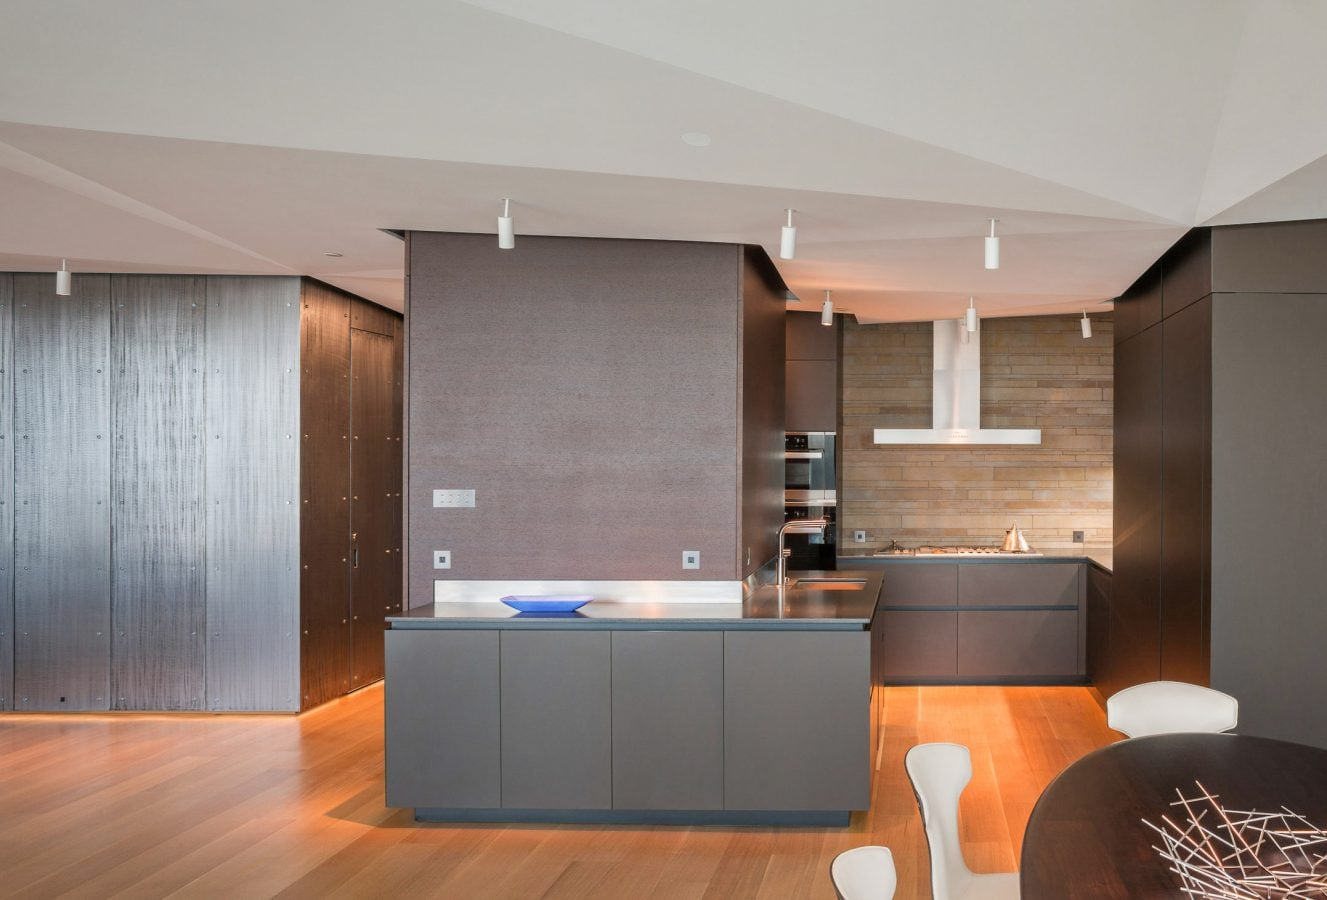 Kitchen of apartment with slate wall panels